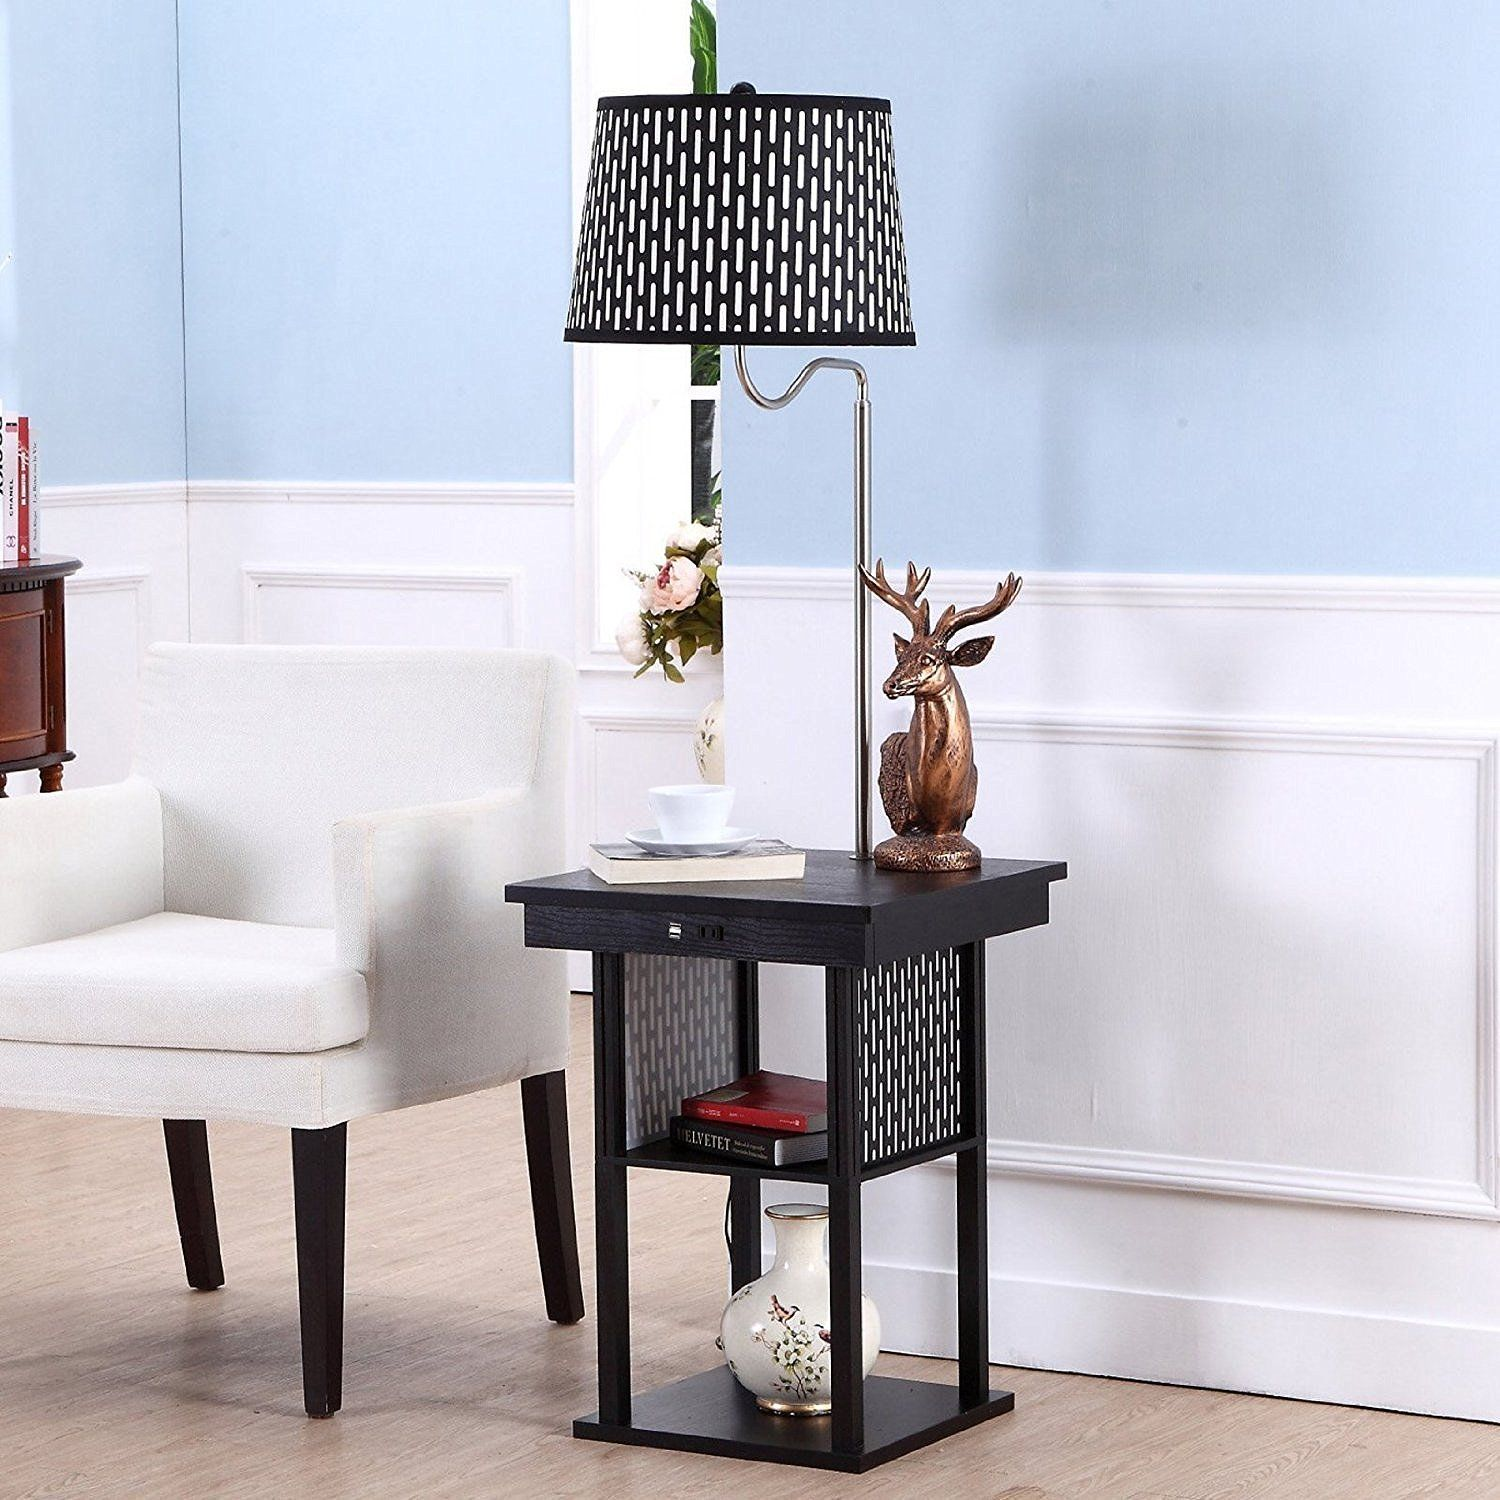 End Tables with Built In Lamps Led floor lamp, Modern